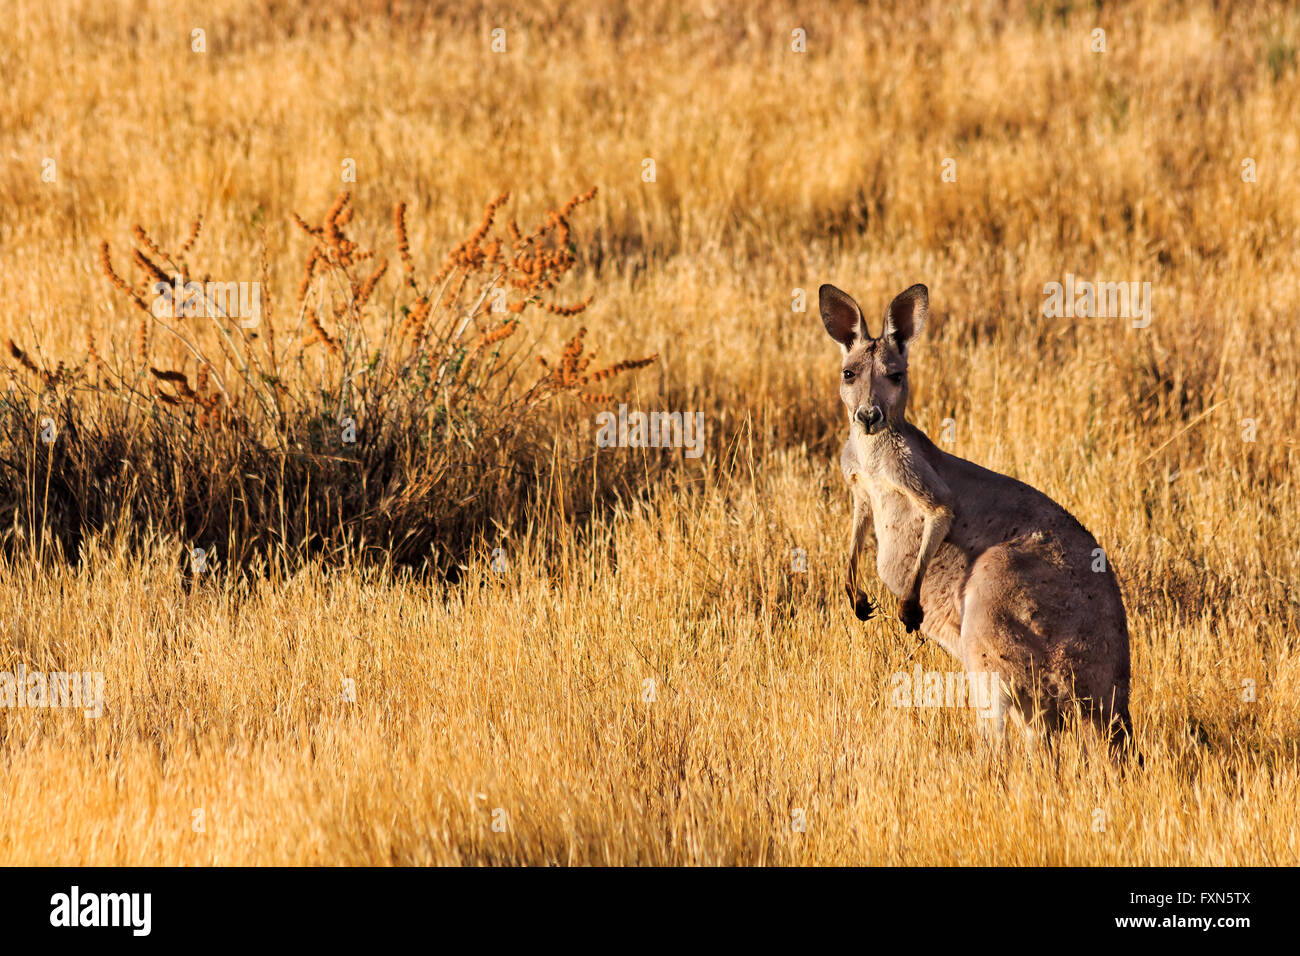 Tall standing kangaroo against yellow brown grassy background of its natural habitat in Flinders Ranges national - Stock Image